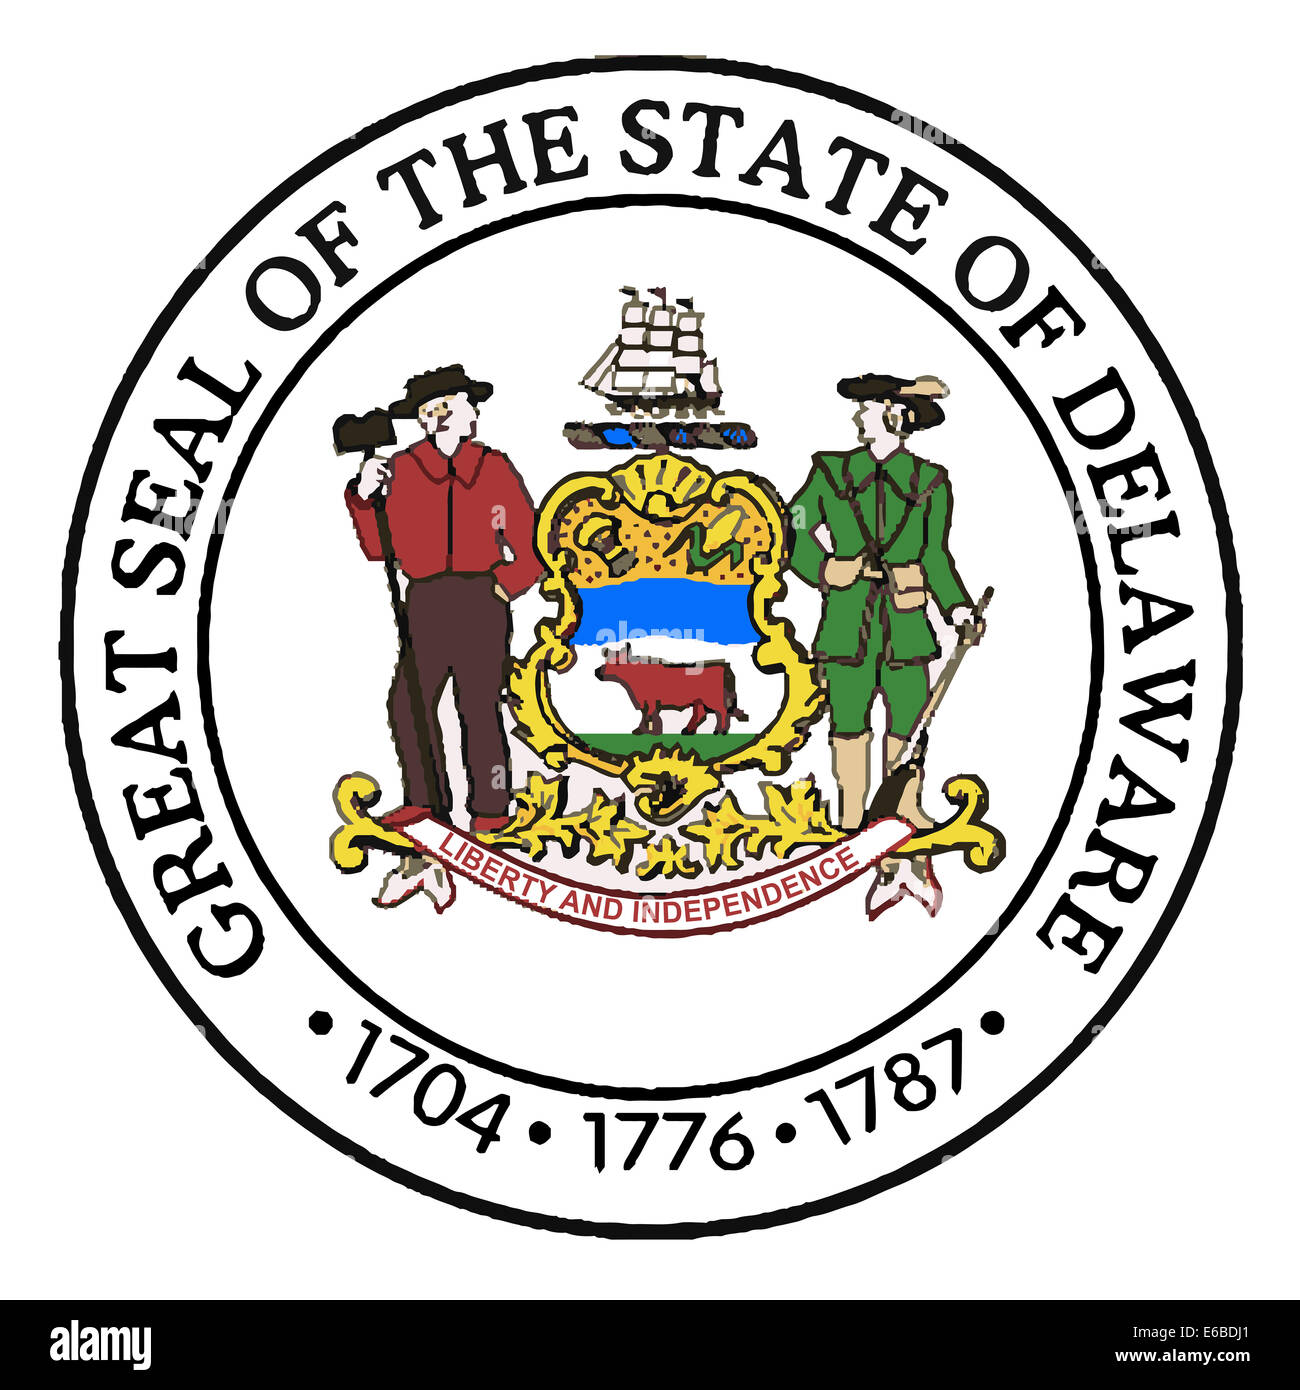 The Great Seal of Delaware over a white background - Stock Image